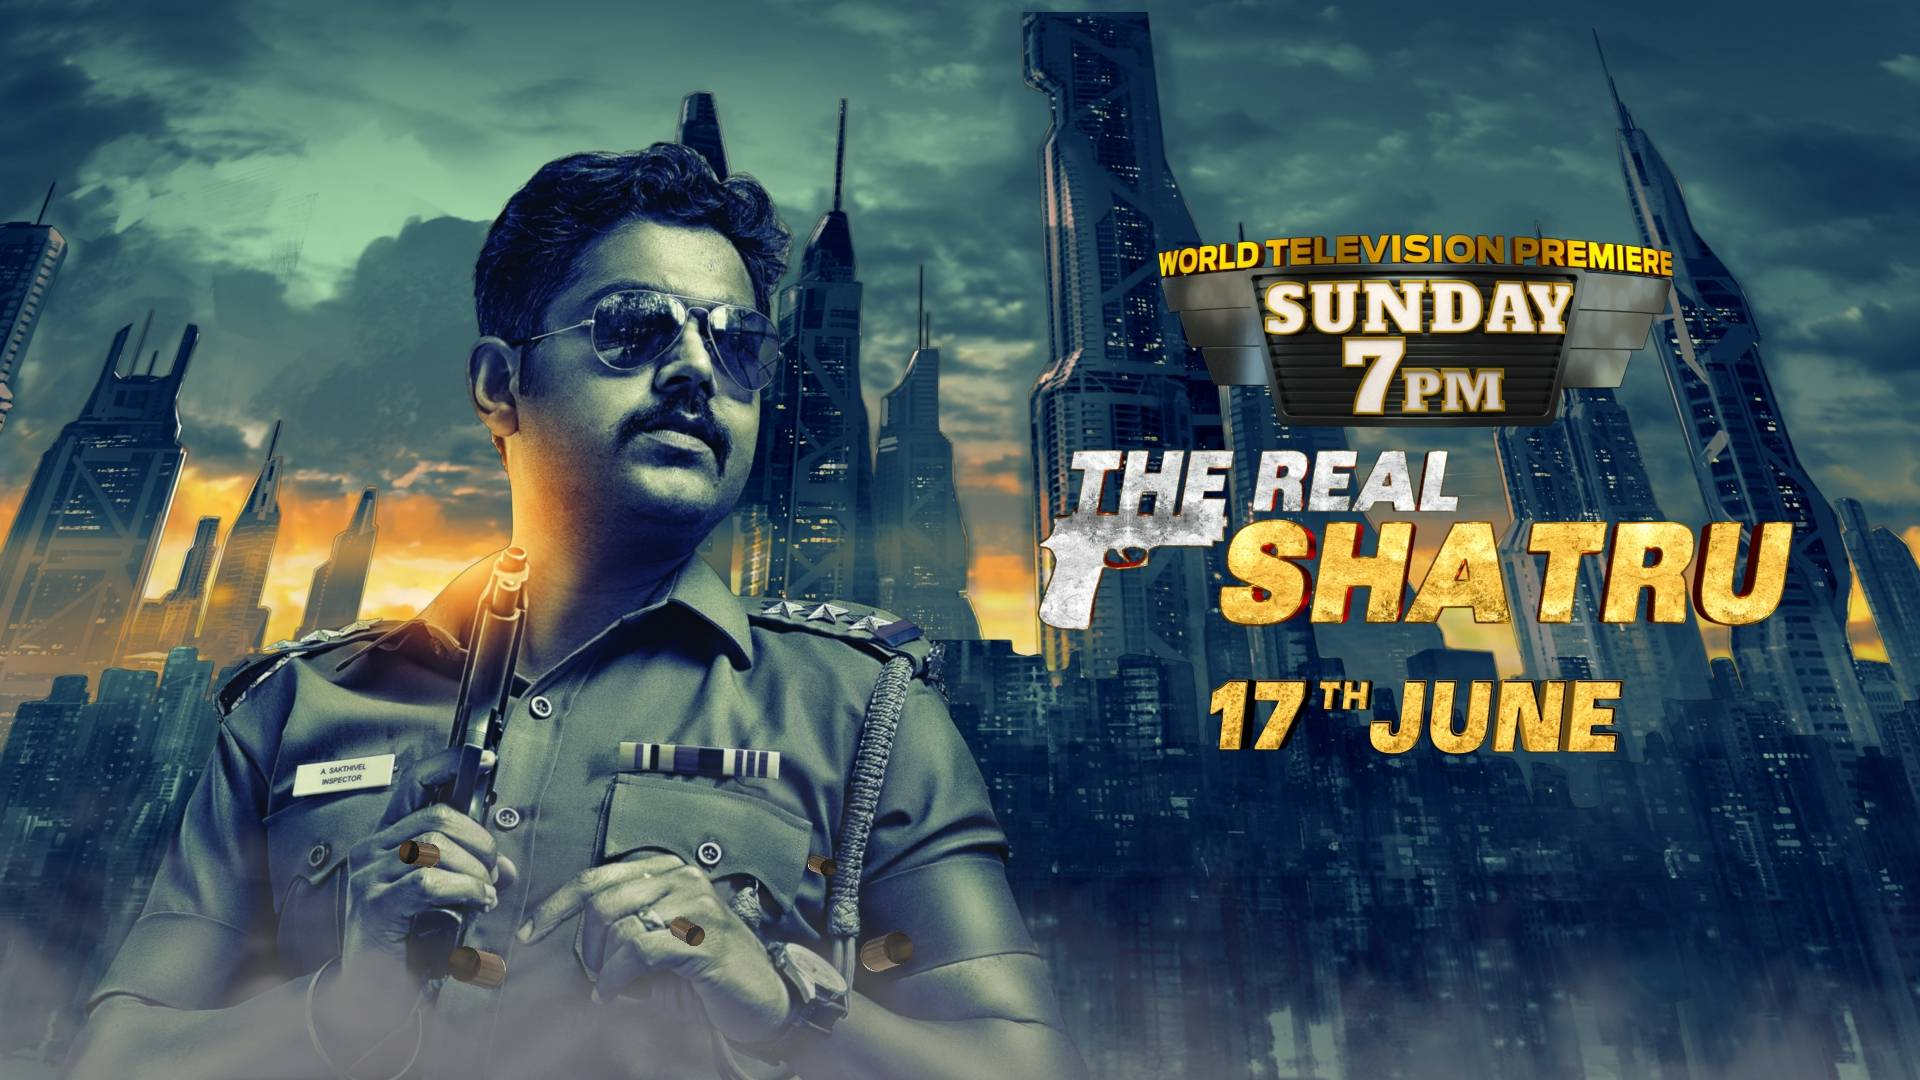 World Television Premiere – The Real Shatru on 17th June 2018 at 7 PM